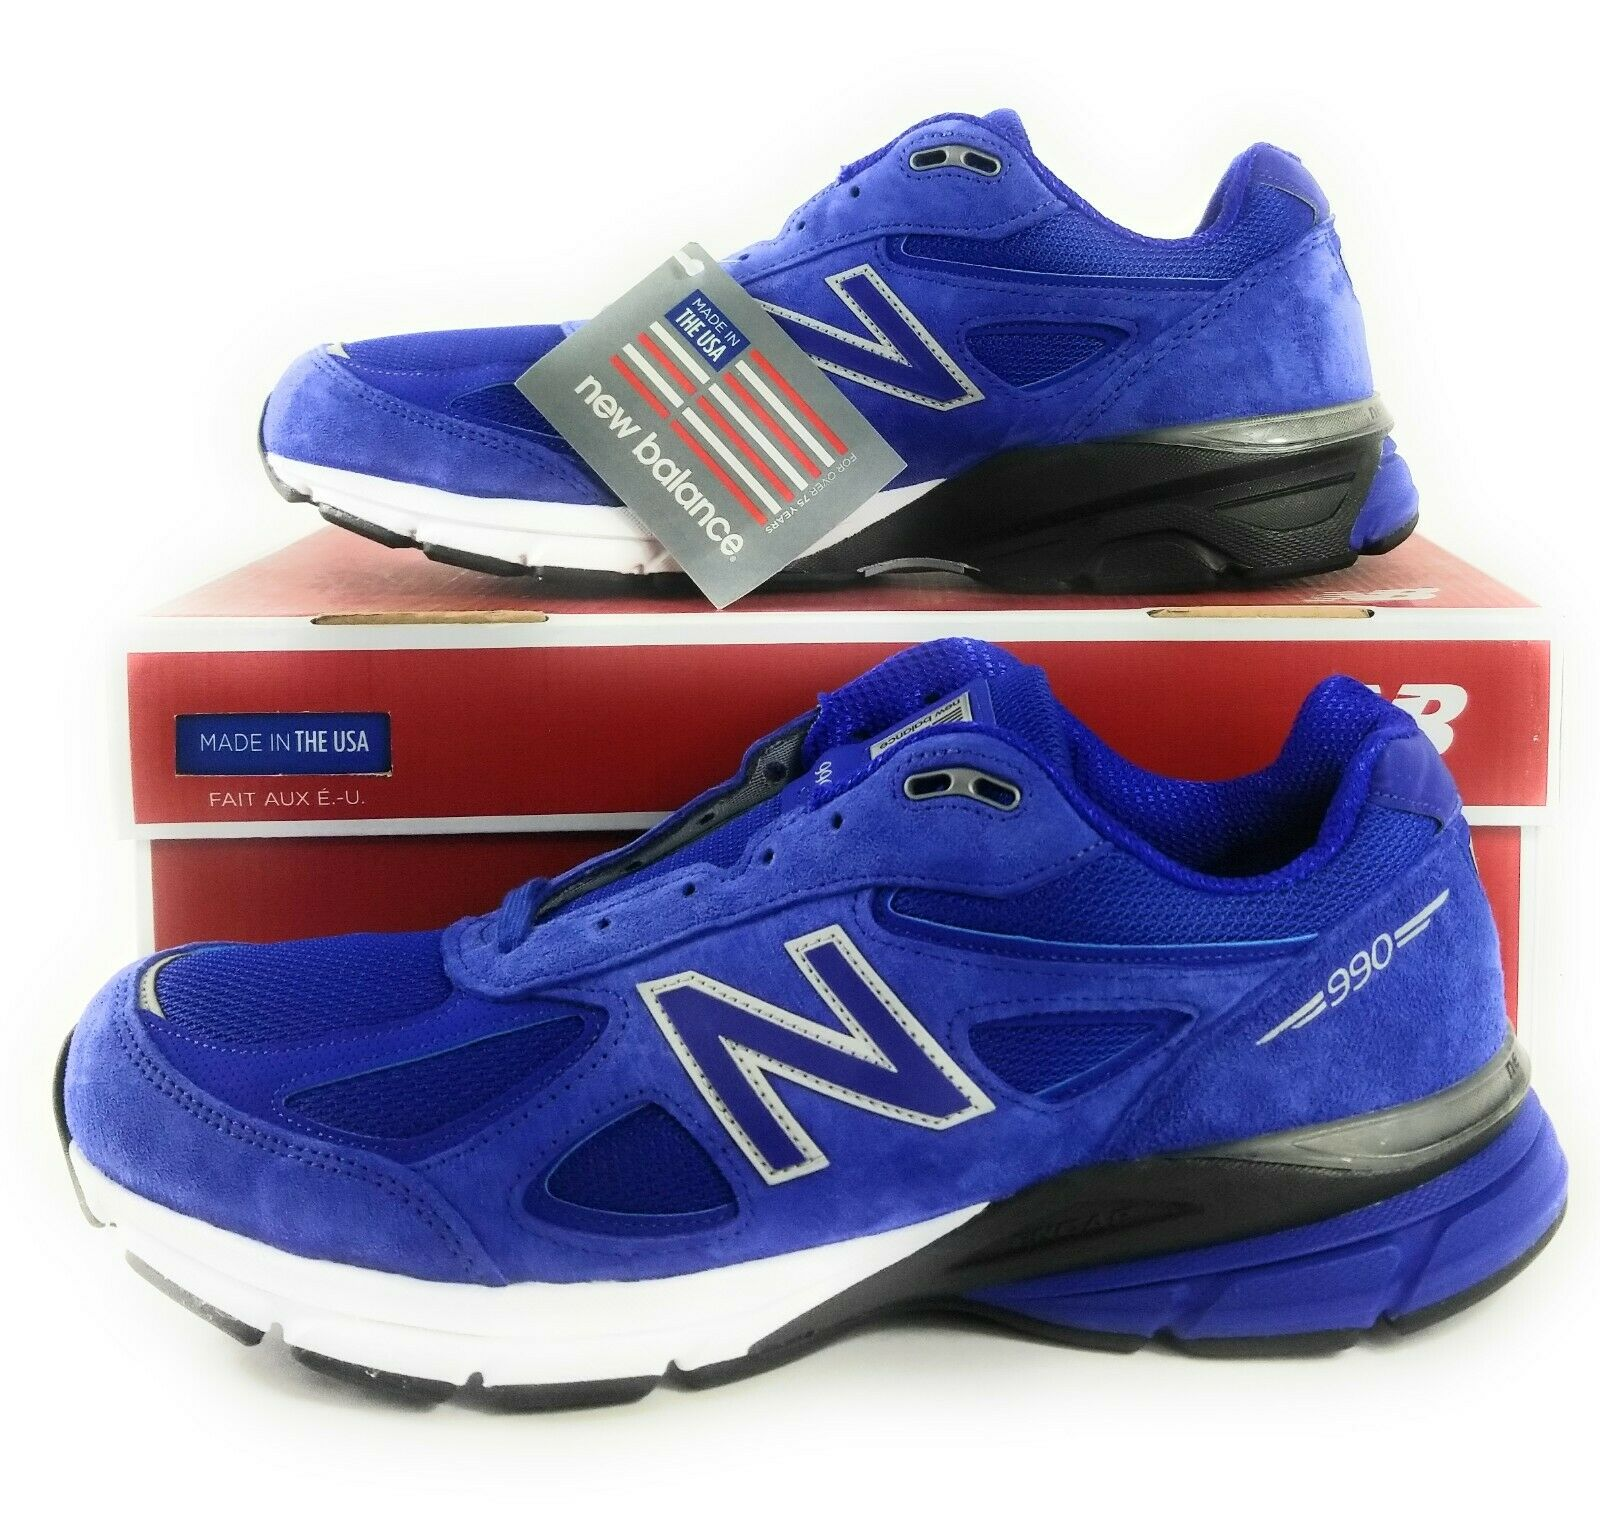 nouveau   990 M990RY4 Taille 14 Bleu Royal Noir Blanc-suede engrener-Made in USA